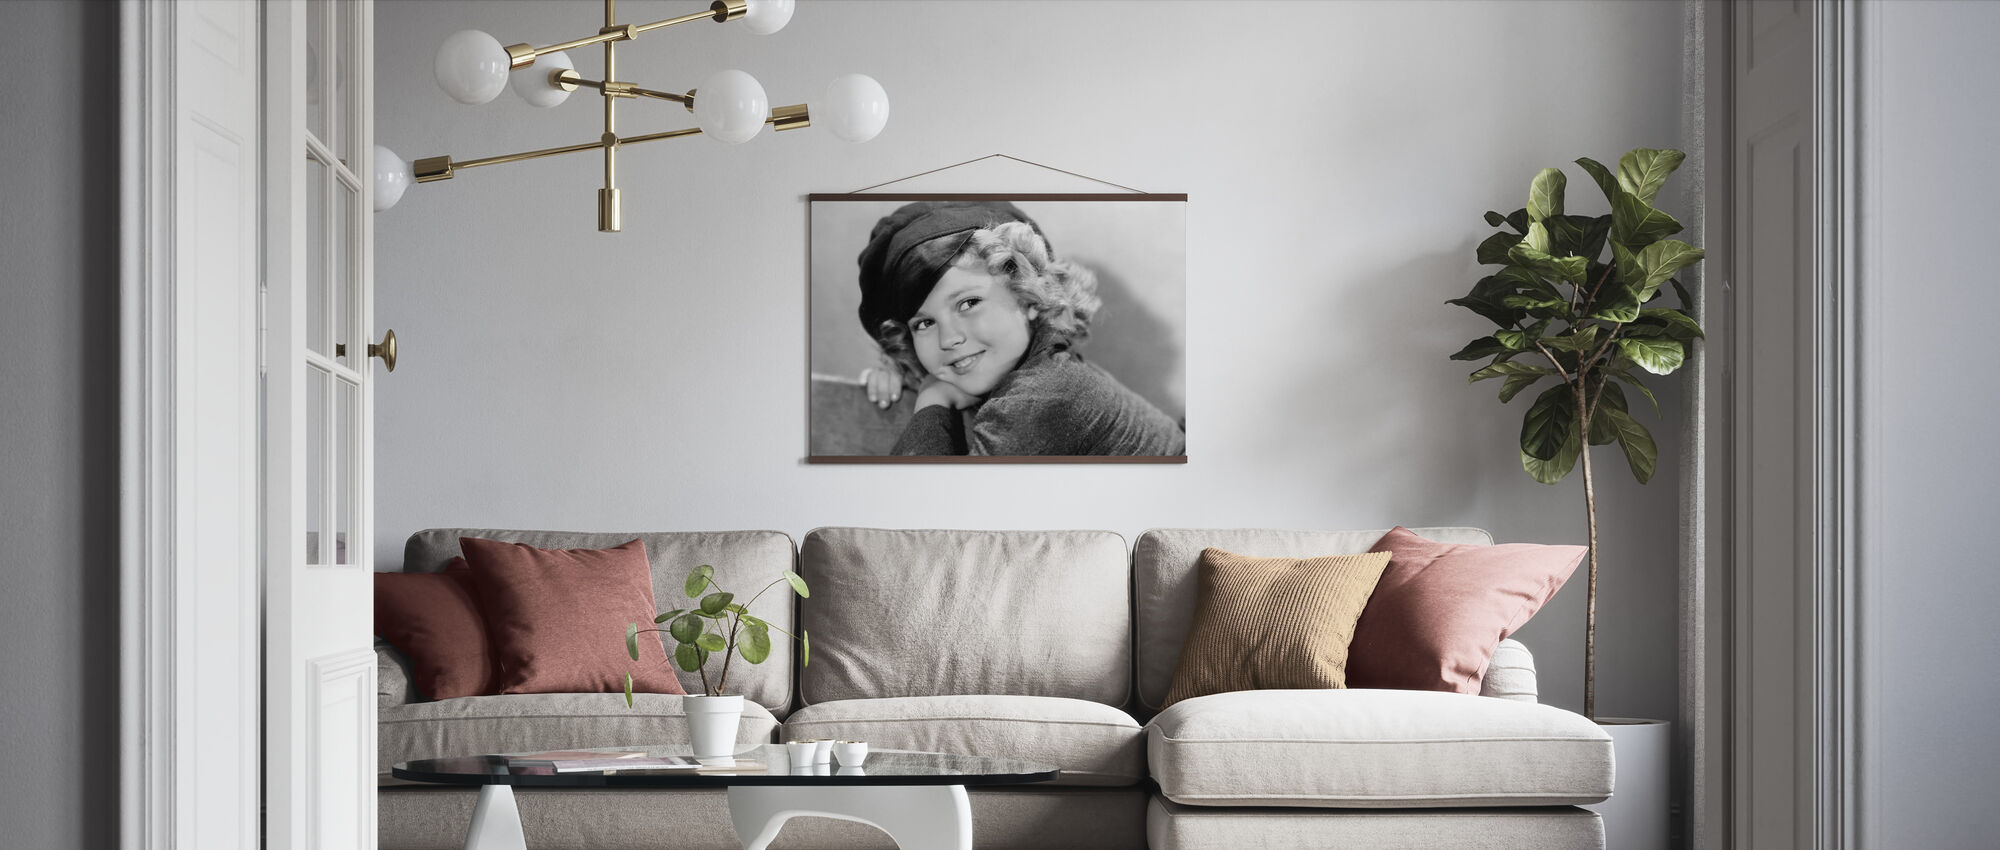 Dimples - Poster - Living Room